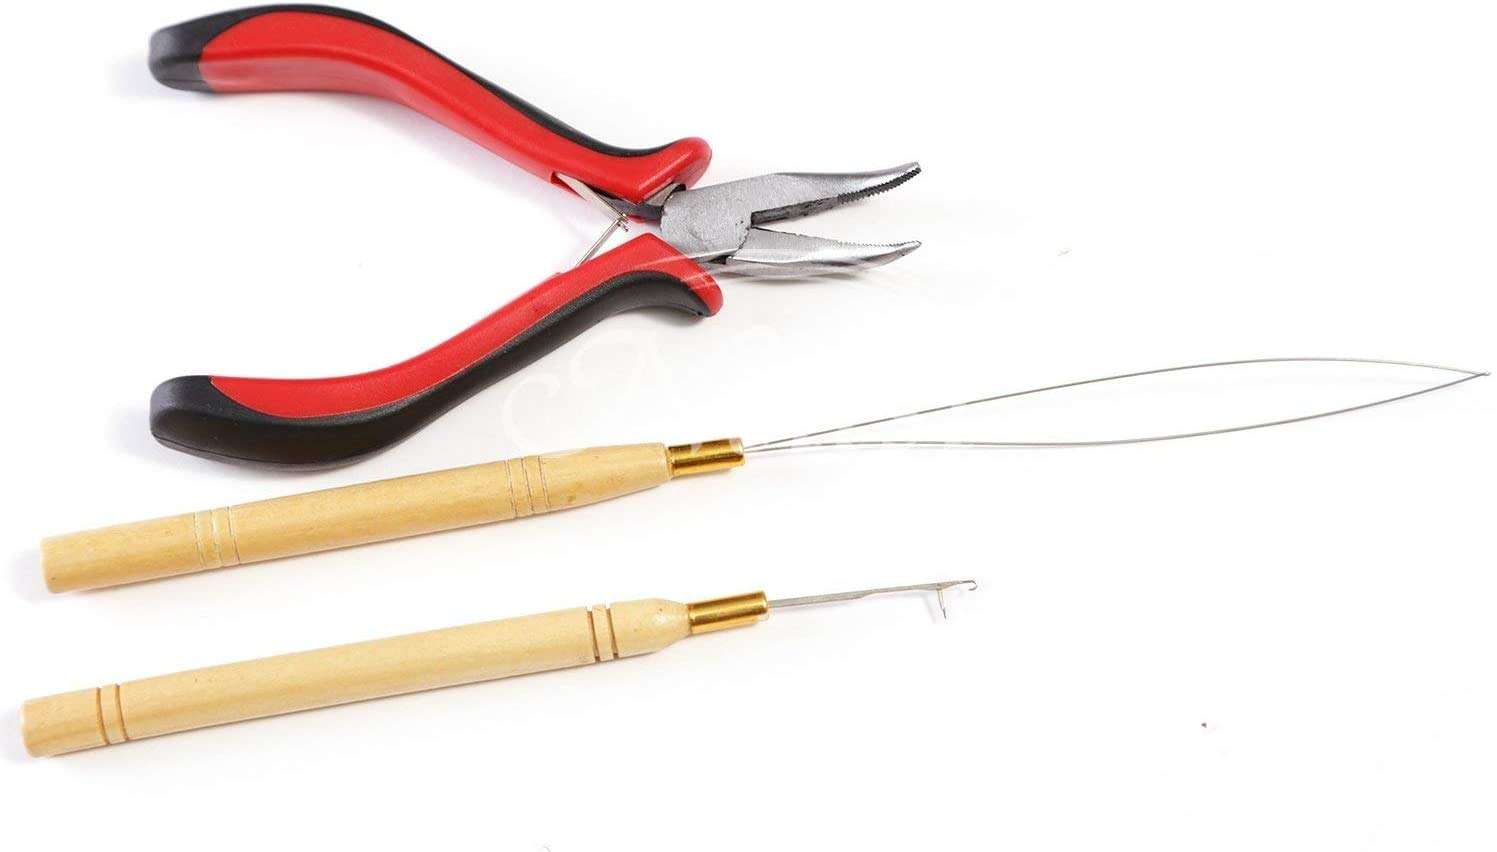 Neitsi 3pcs Kit for Micro Link Hair Feather Extensions: Pliers, Micro Pulling Needle, and Loop Threader